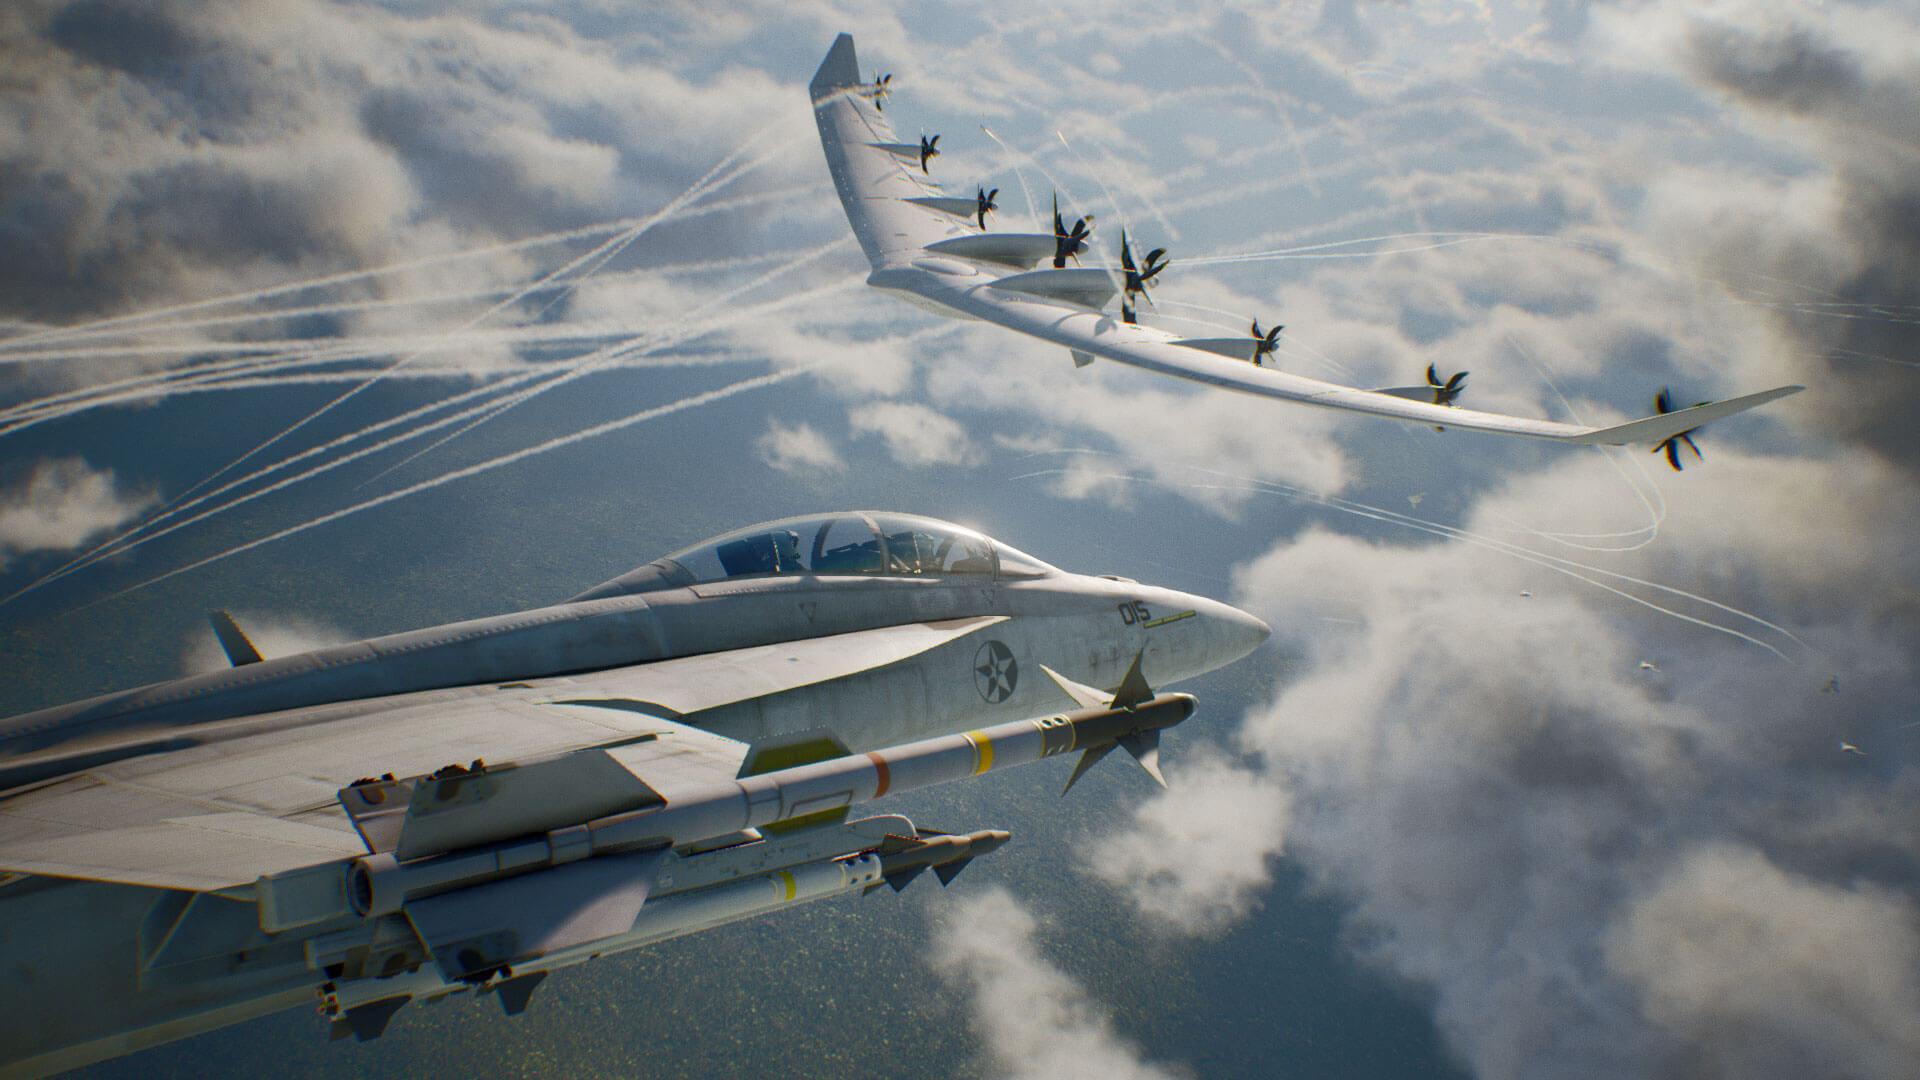 Super Hornet and the Arsenal Bird in Ace Combat 7: Skies Unknown